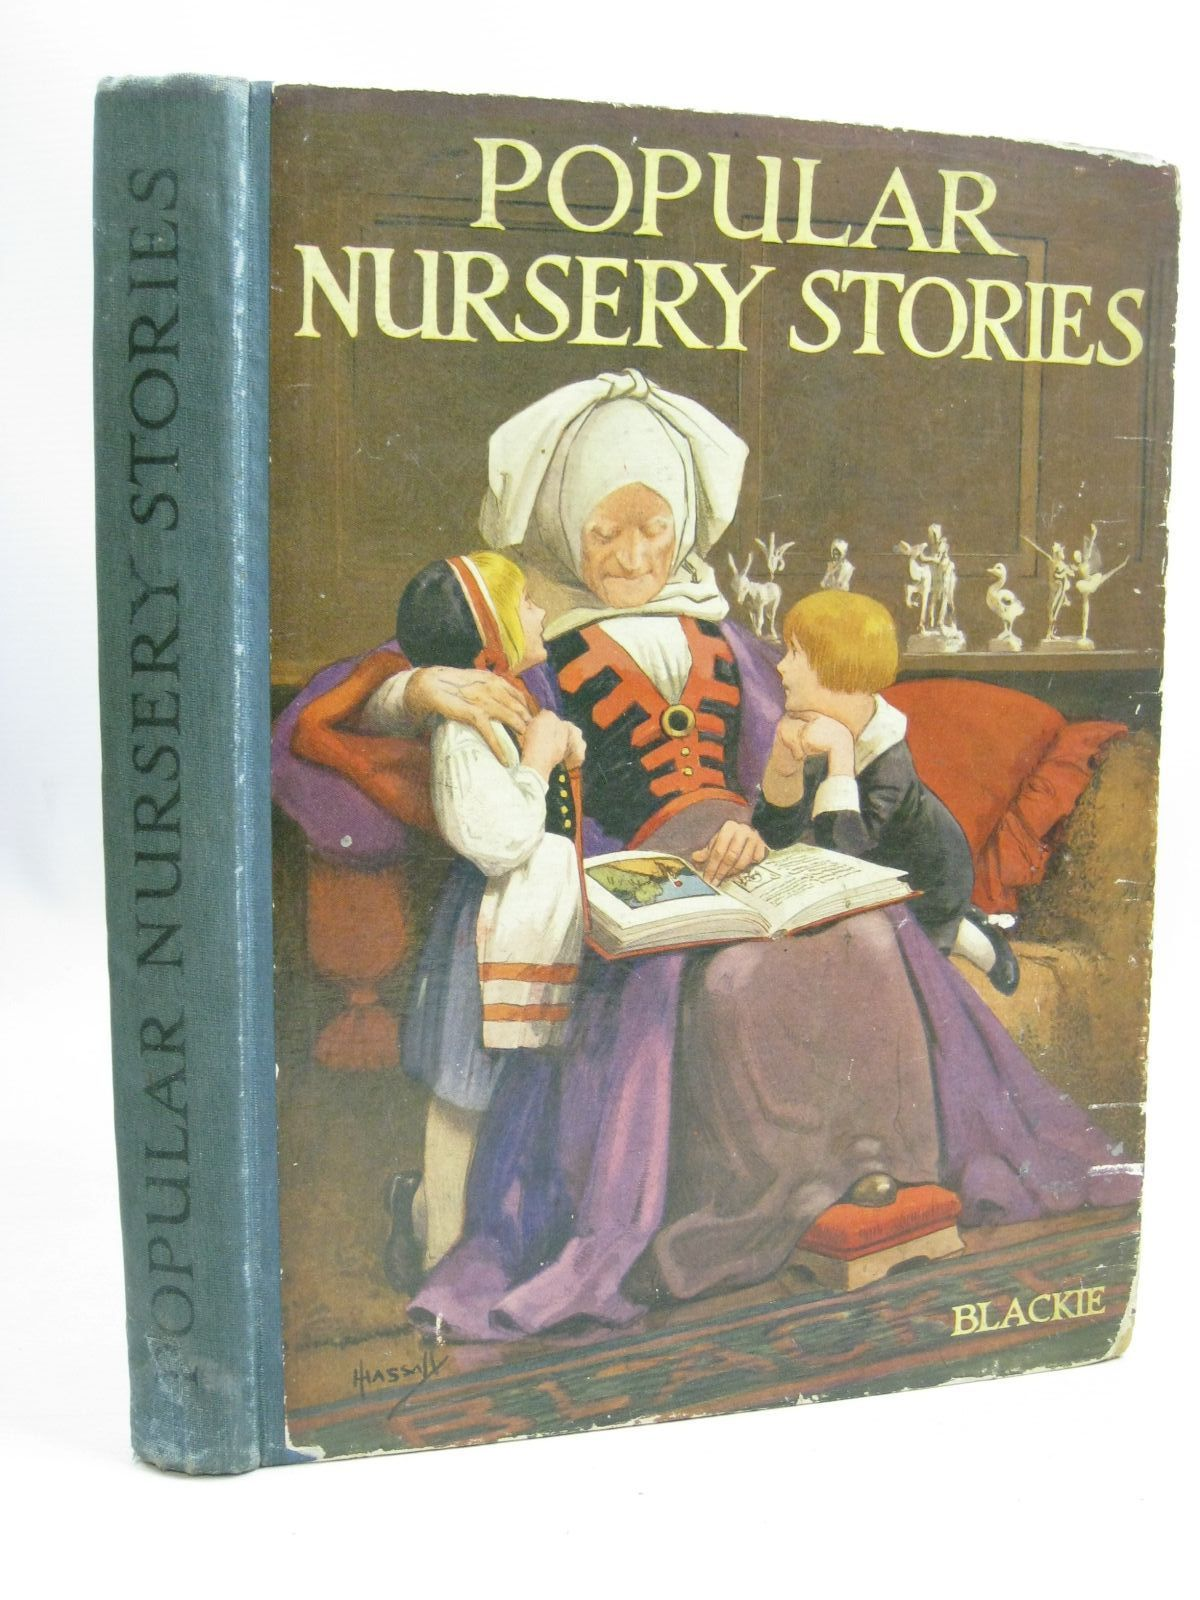 Photo of BLACKIE'S POPULAR NURSERY STORIES illustrated by Hassall, John published by Blackie & Son Ltd. (STOCK CODE: 1506098)  for sale by Stella & Rose's Books